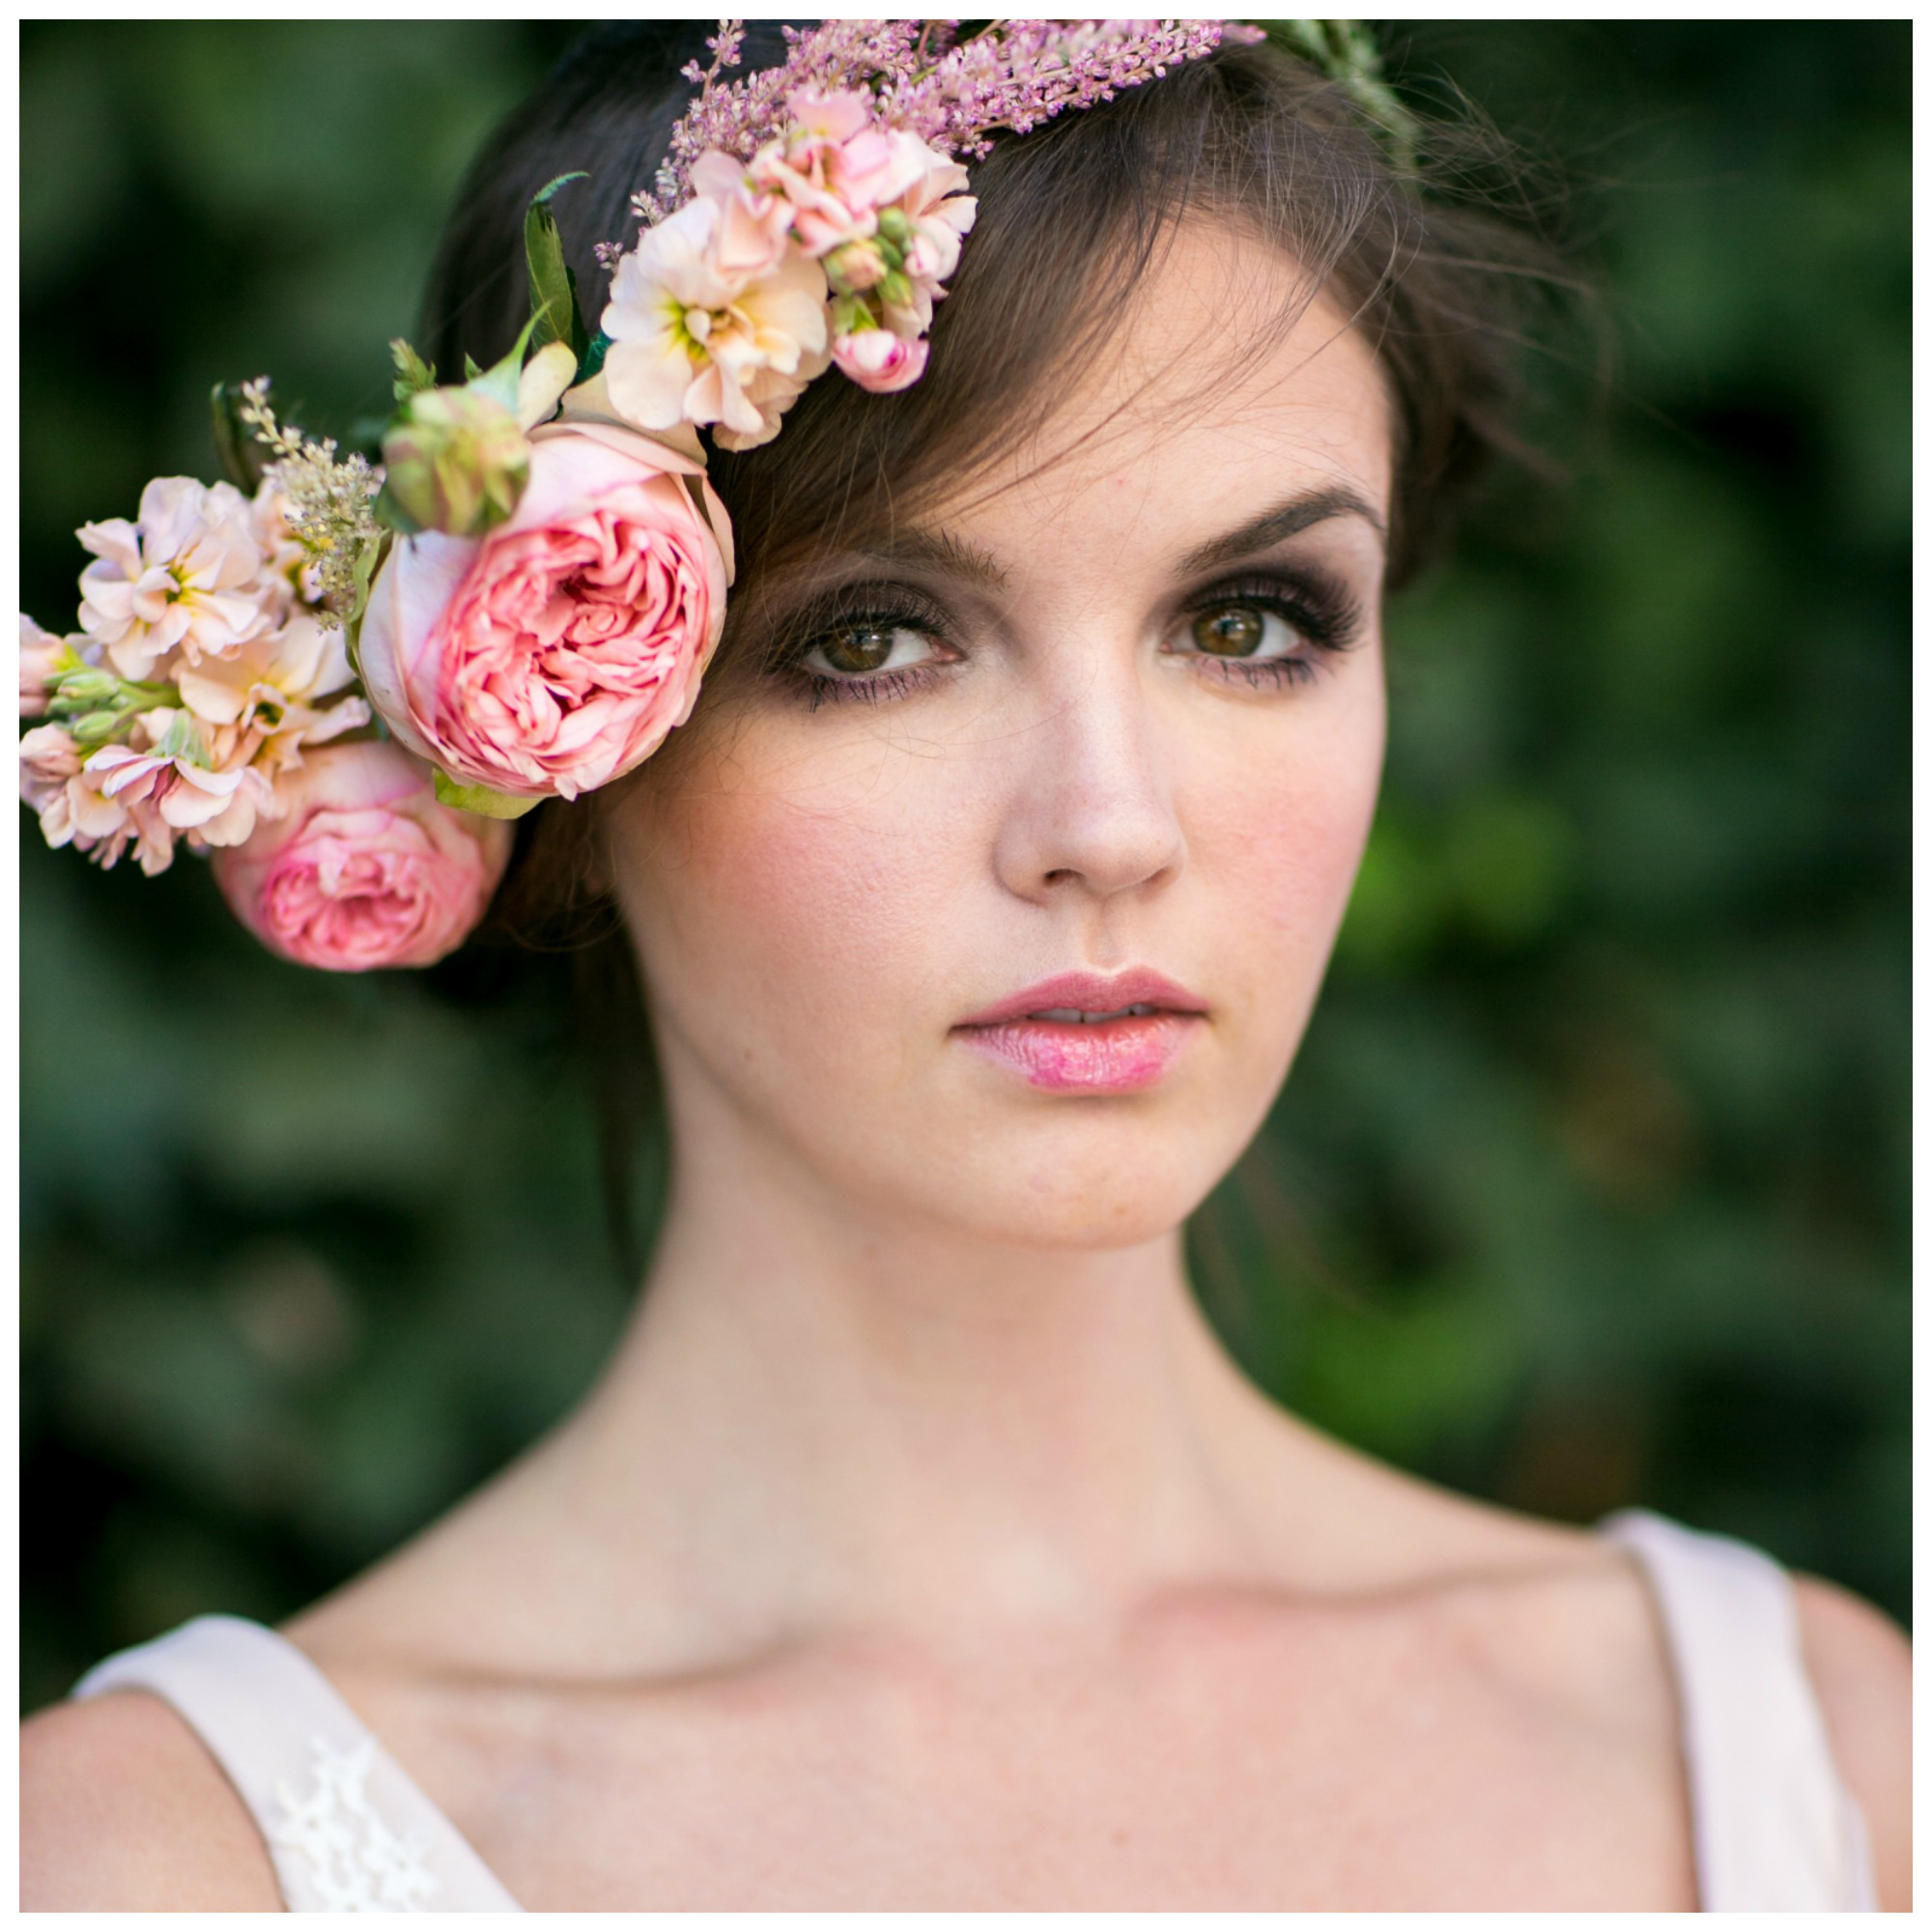 Model in wedding gown with smokey grey eye shadow, pink lips, and fresh flower crown, posing in SoHo New York City